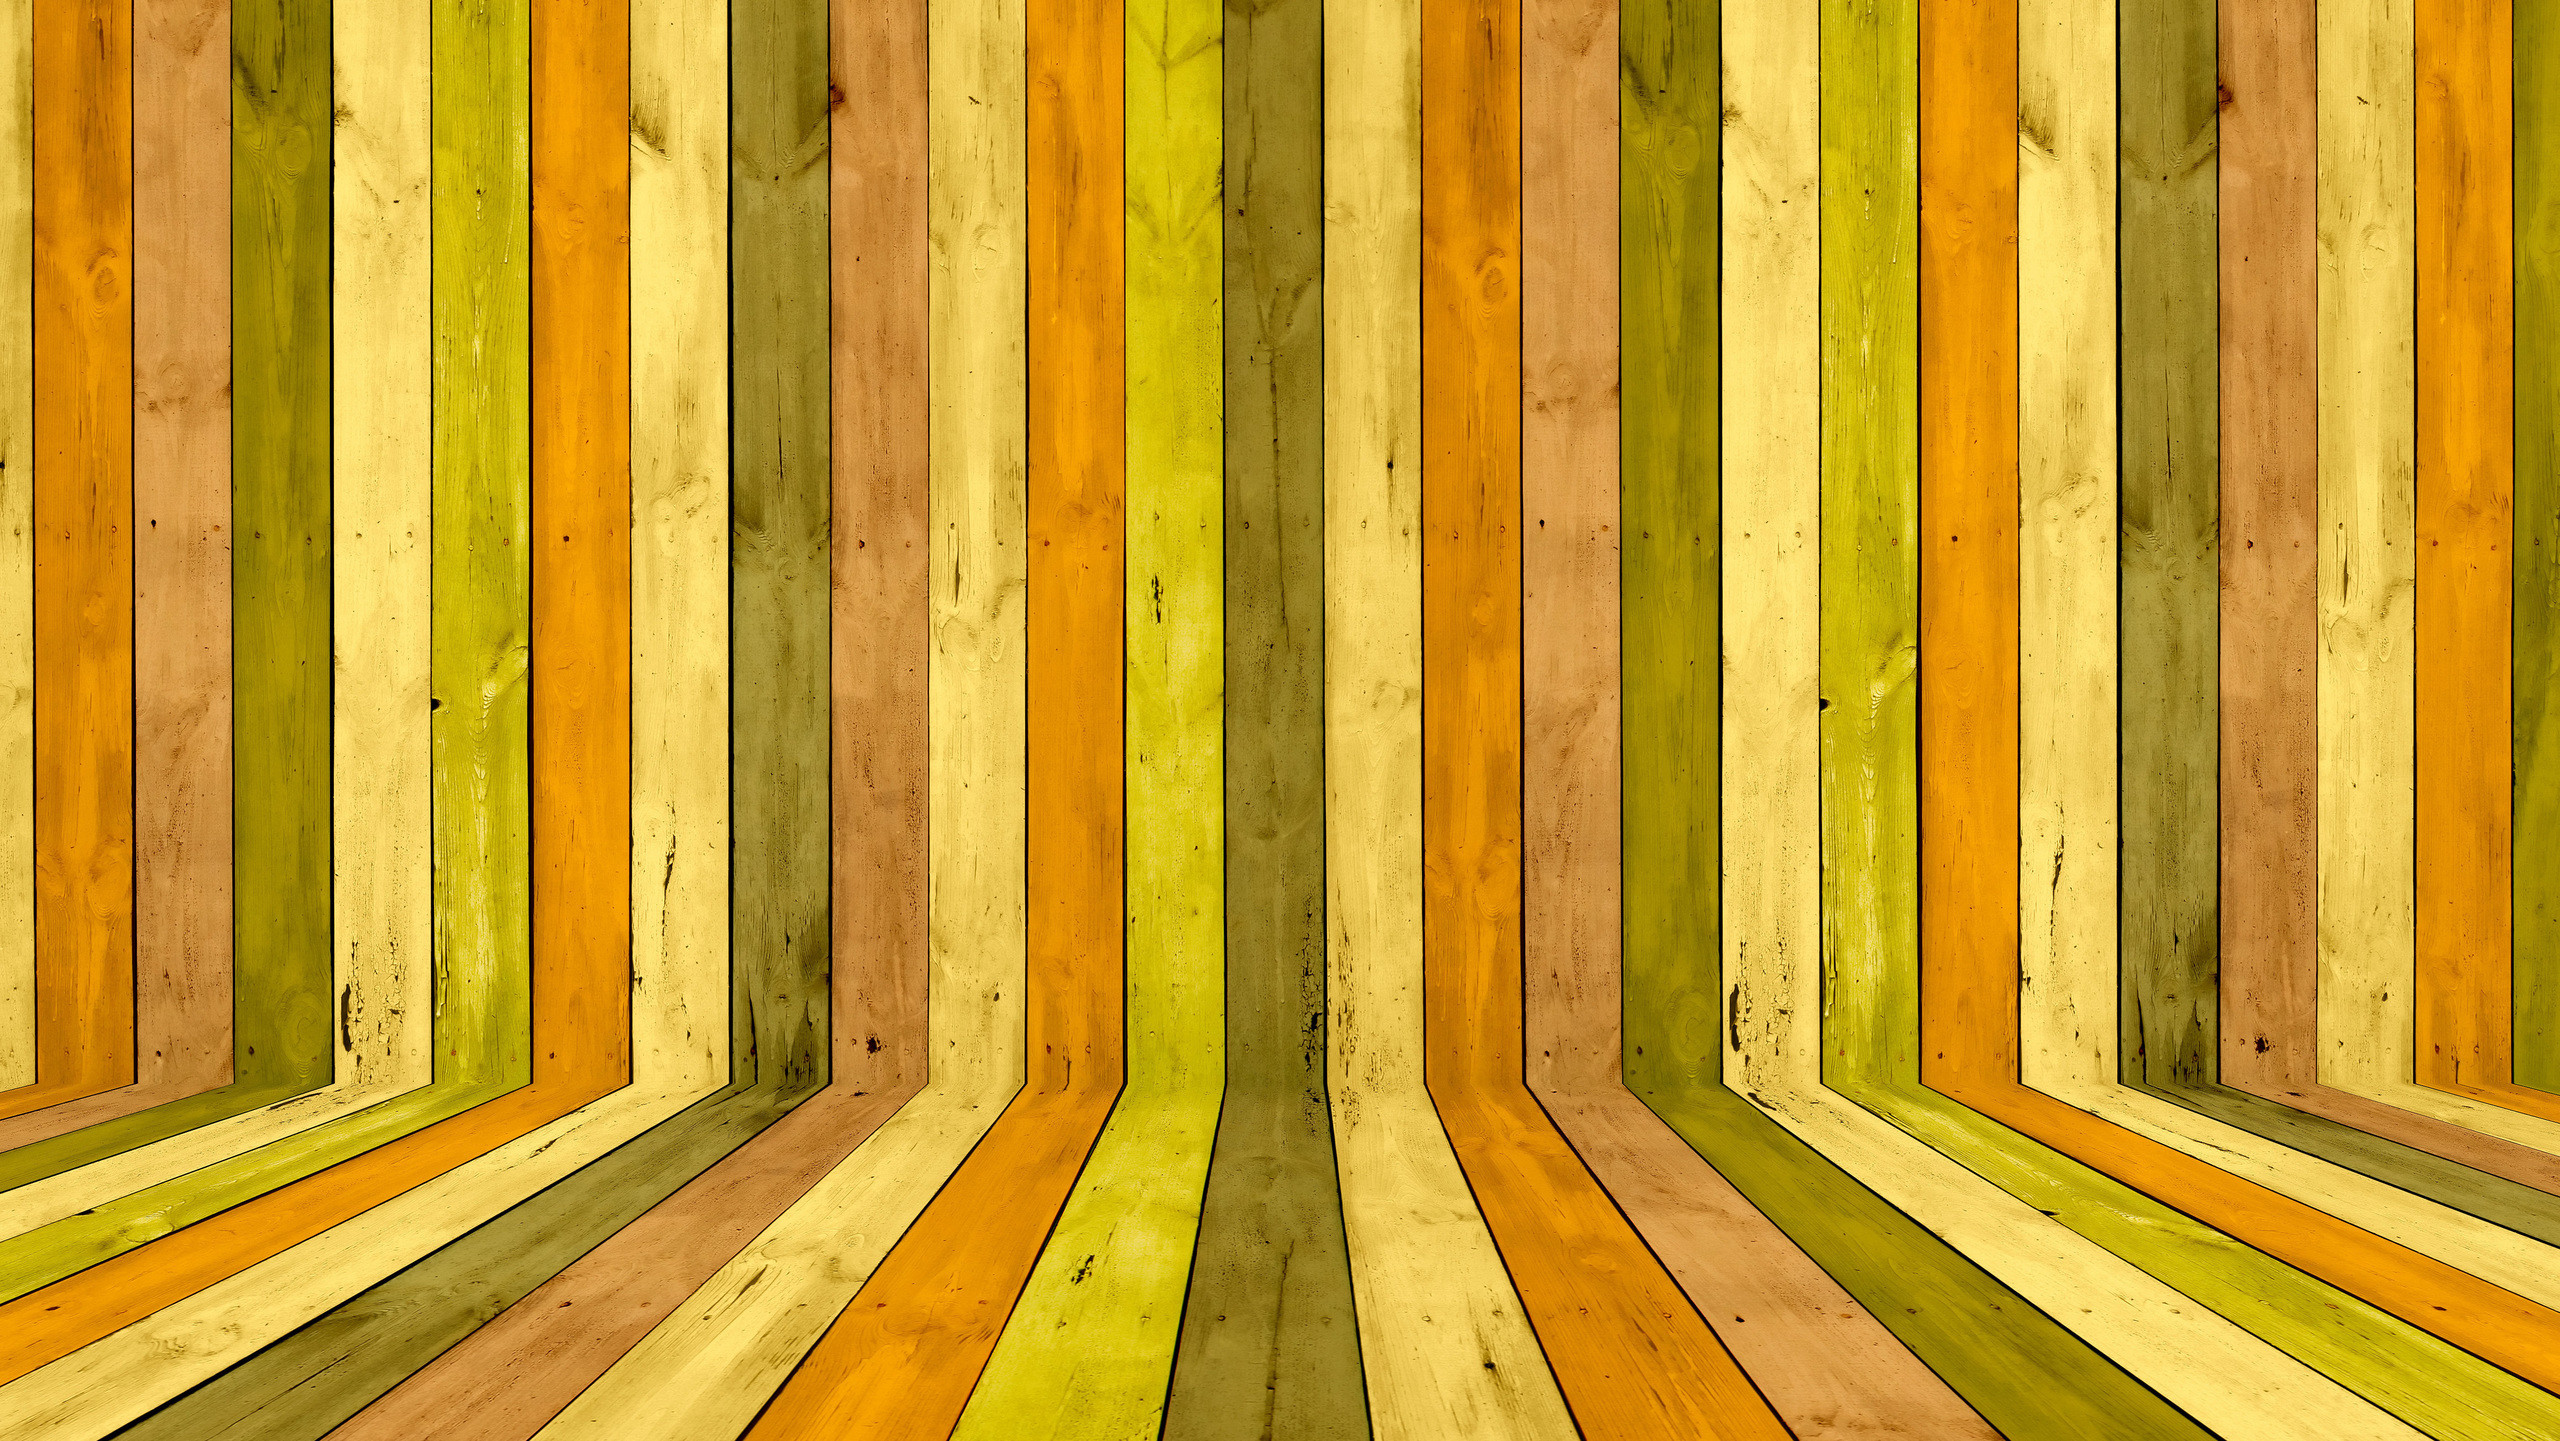 Res: 2560x1441, Colors images Colored boards HD wallpaper and background photos